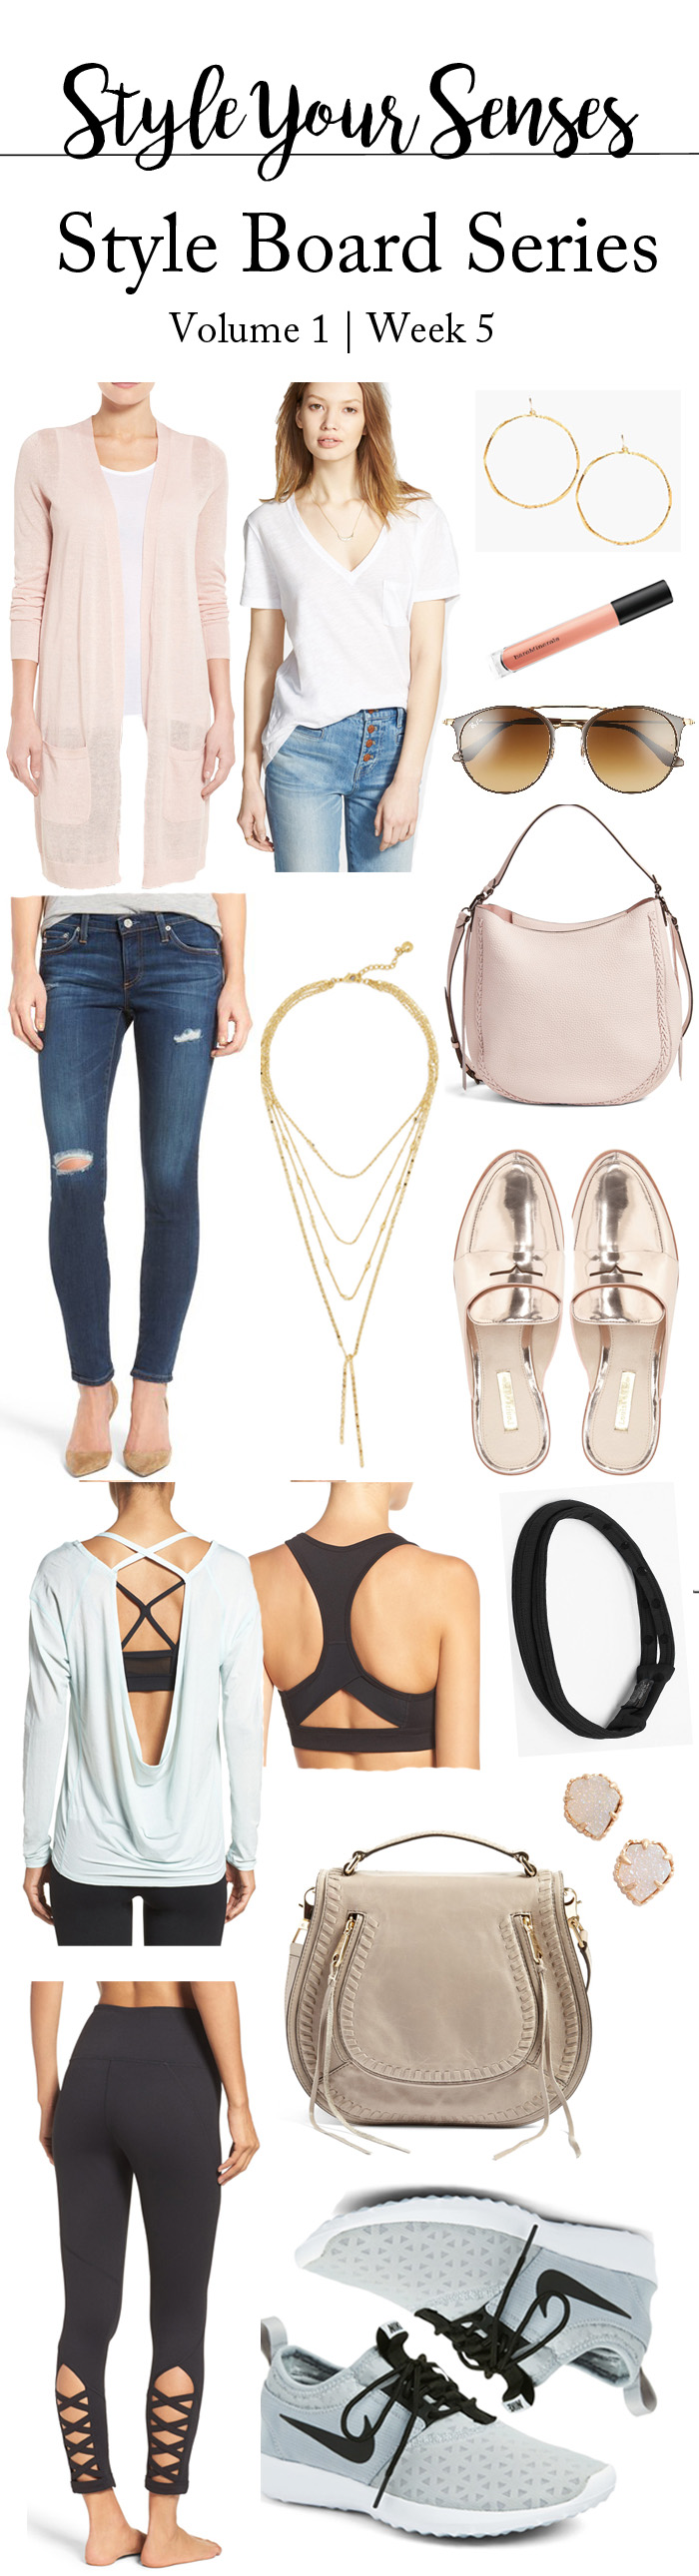 The Style Board Series: A casual outfit + an Athleisure look!